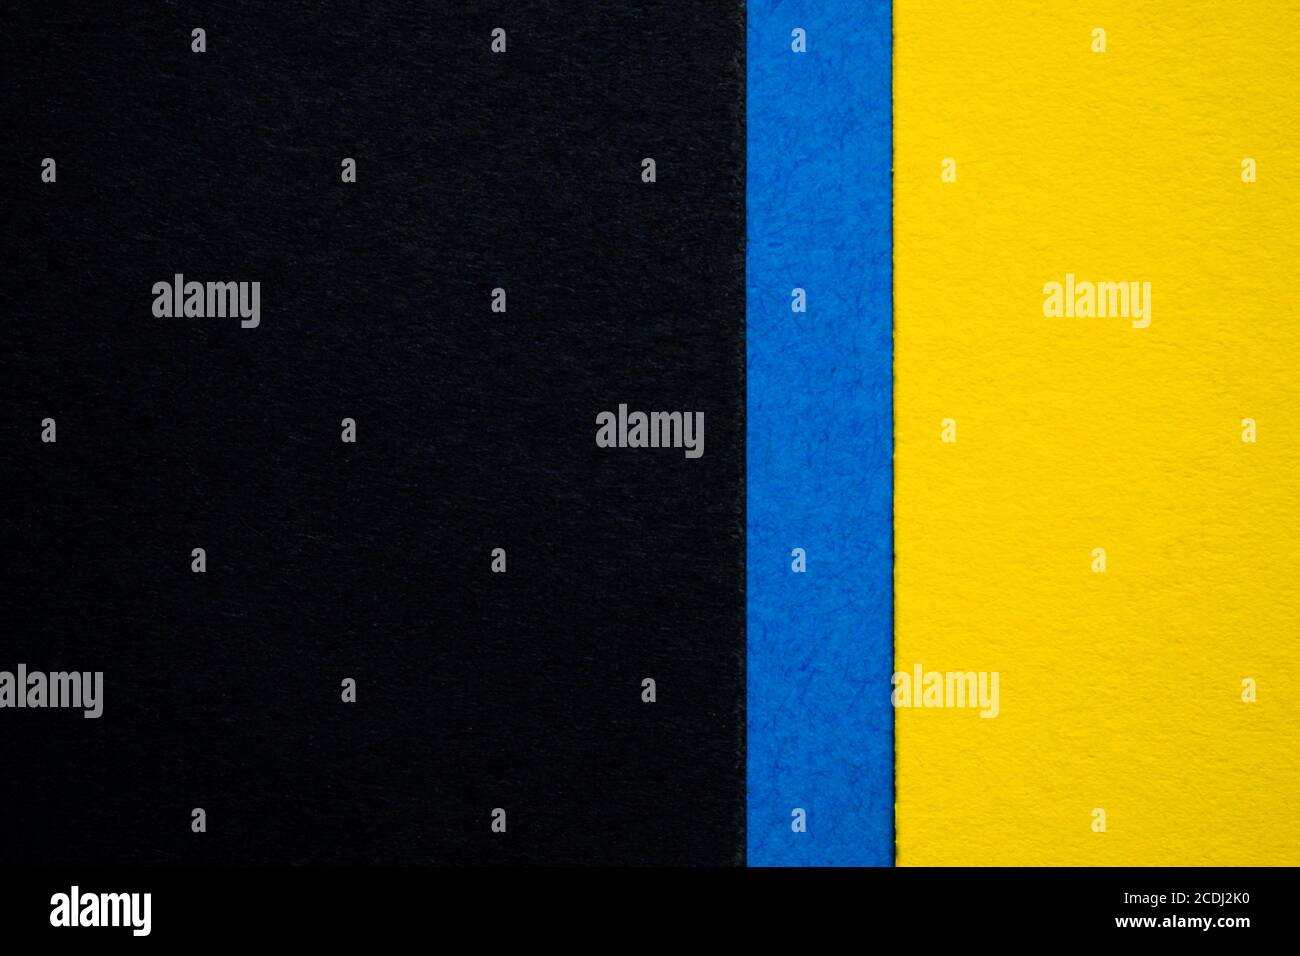 Yellow And Black Colored Paper Background Wallpaper Divided With Blue Stripe Stock Photo Alamy